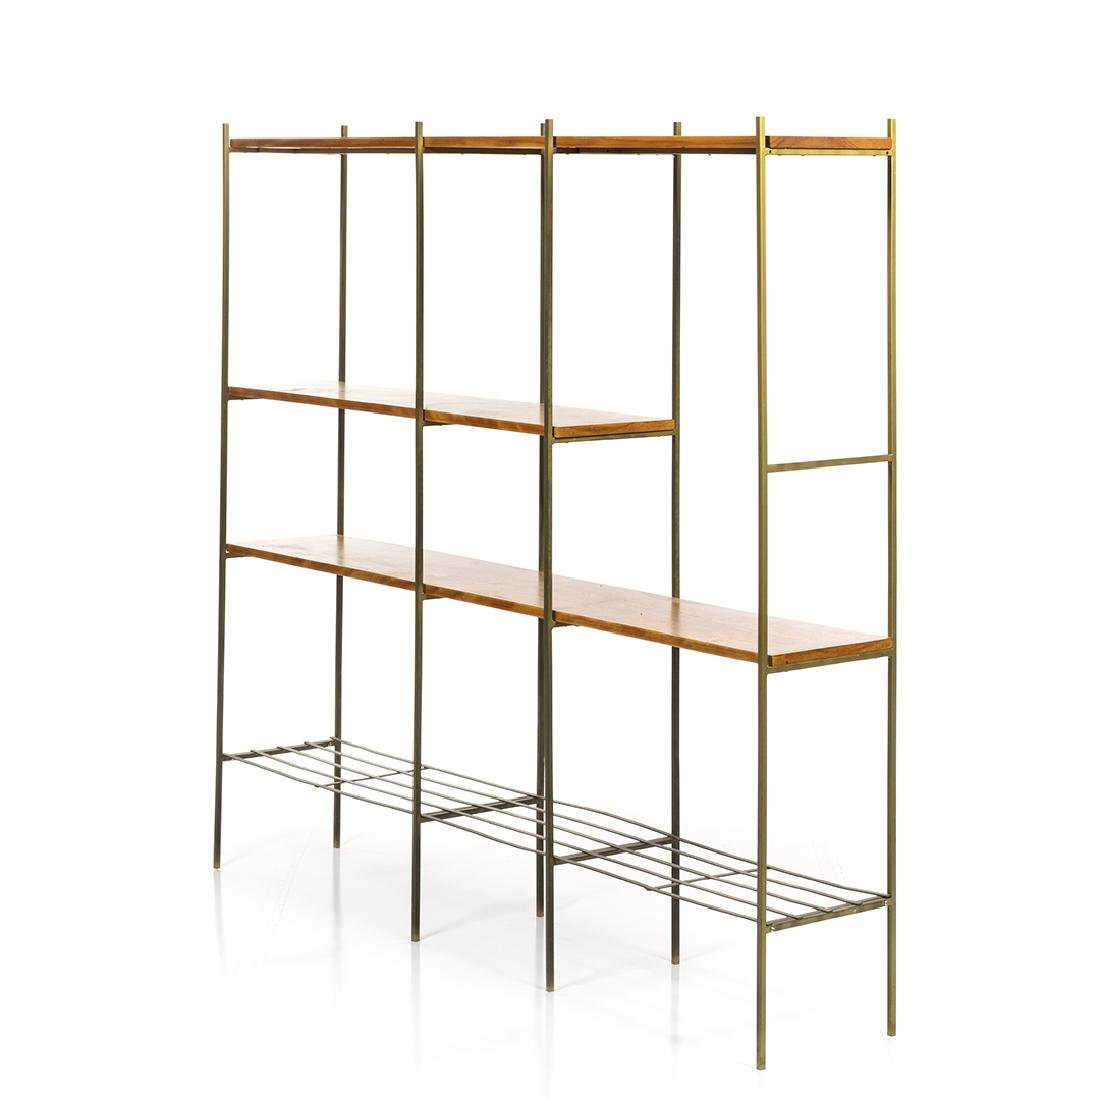 Kenneth Lind Room Divider - 2